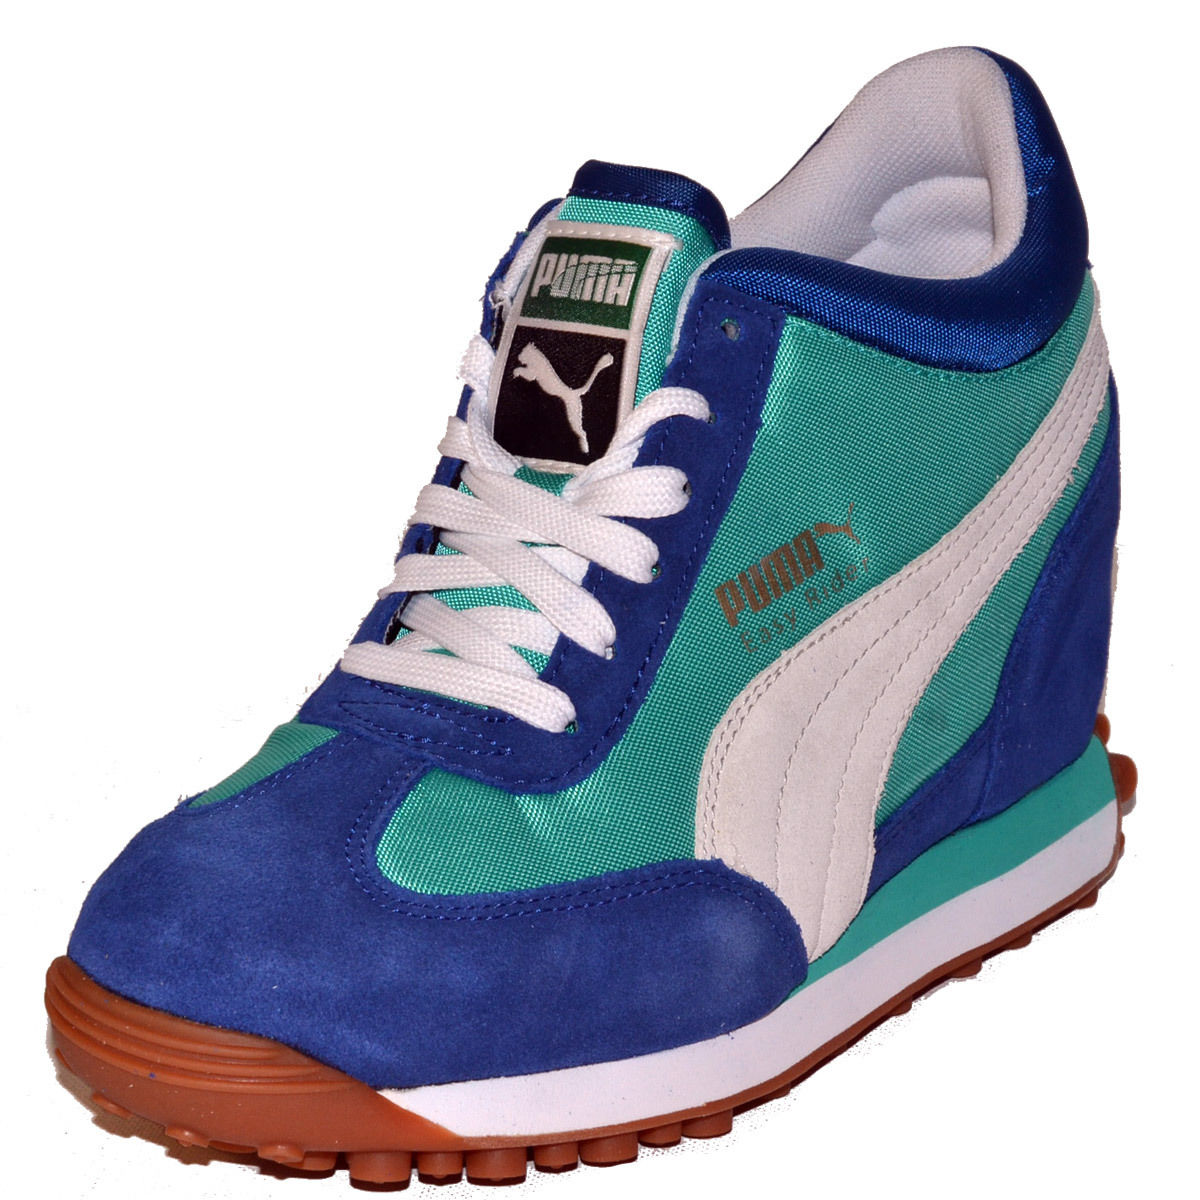 PUMA Easy Rider Wedge Lo Sport Women's Shoes Sneakers